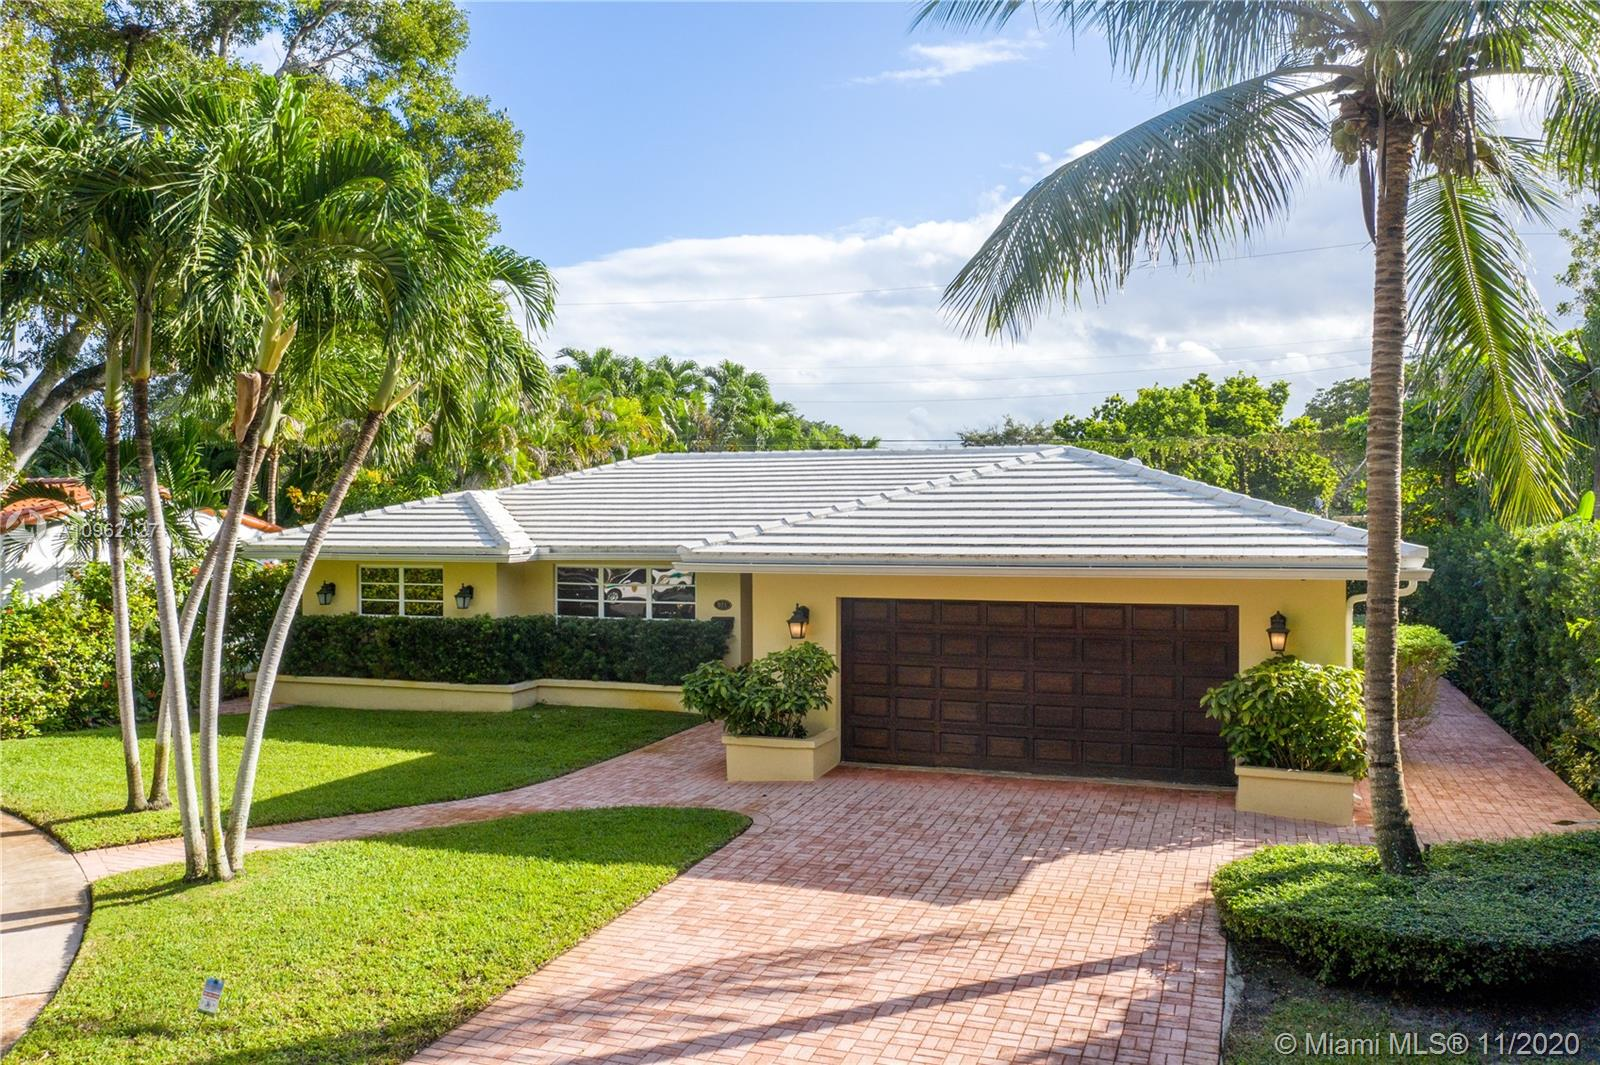 Details for 921 Tangier Street, Coral Gables, FL 33134